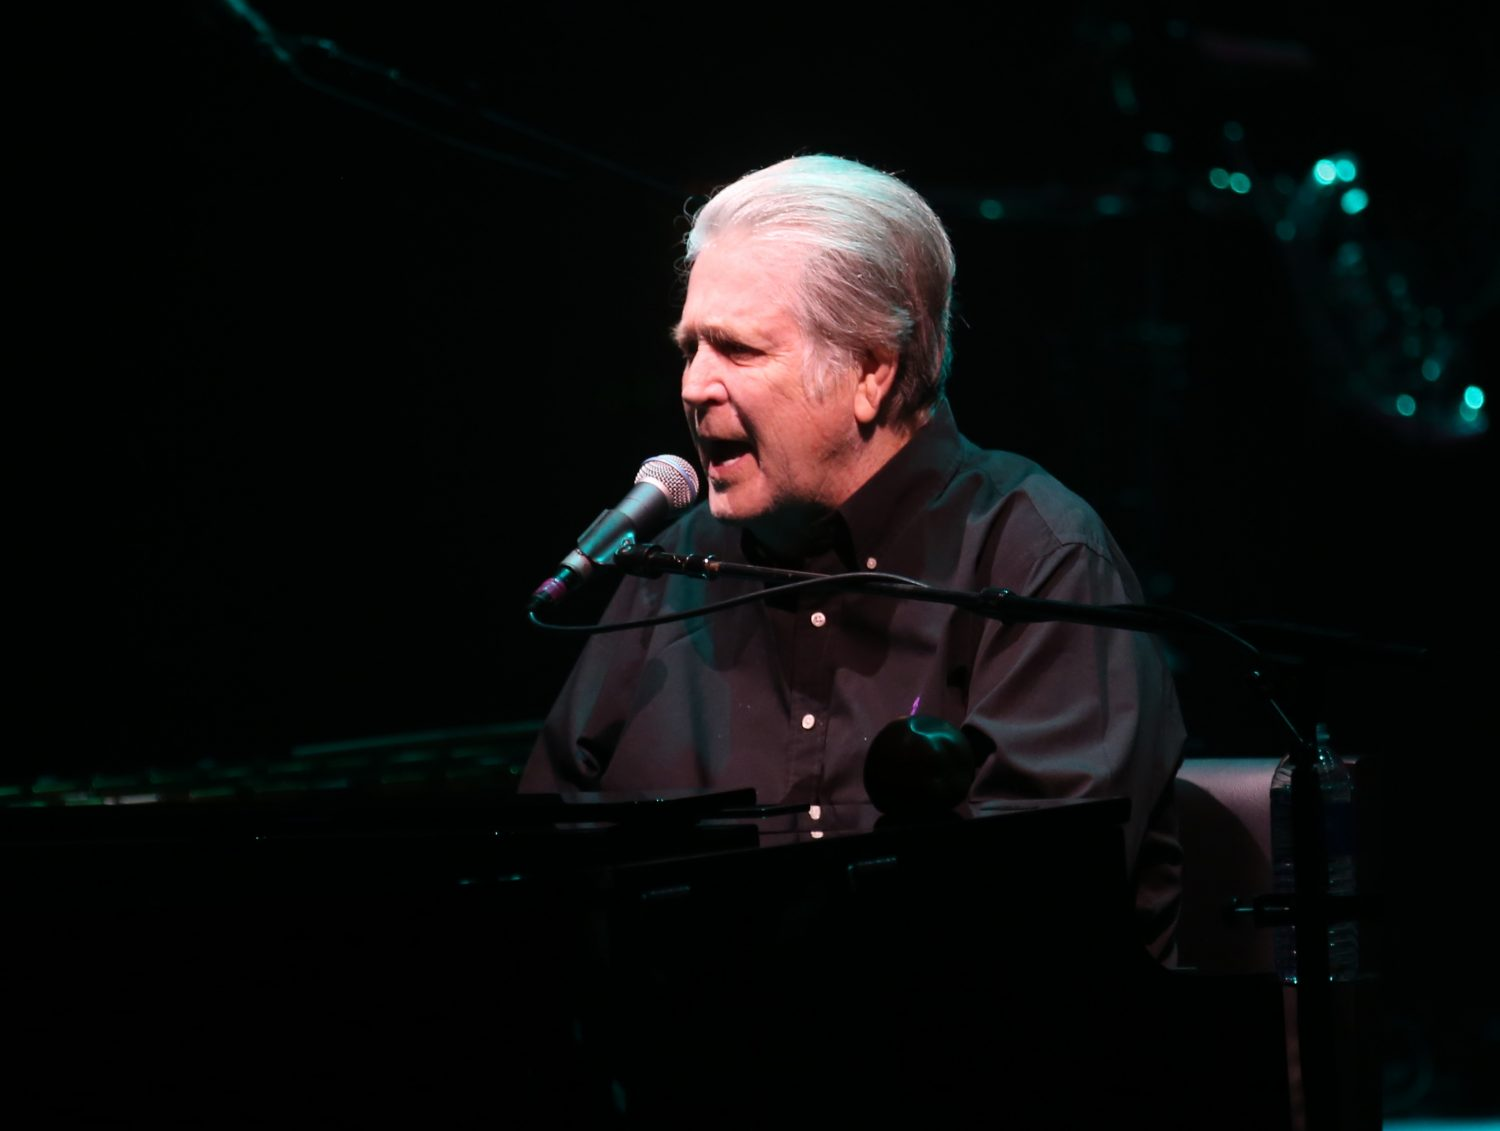 """Brian Wilson performs at UB's Center for the Arts for """"Pet Sounds"""" anniversary tour Wednesday. (Sharon Cantillon/Buffalo News)"""